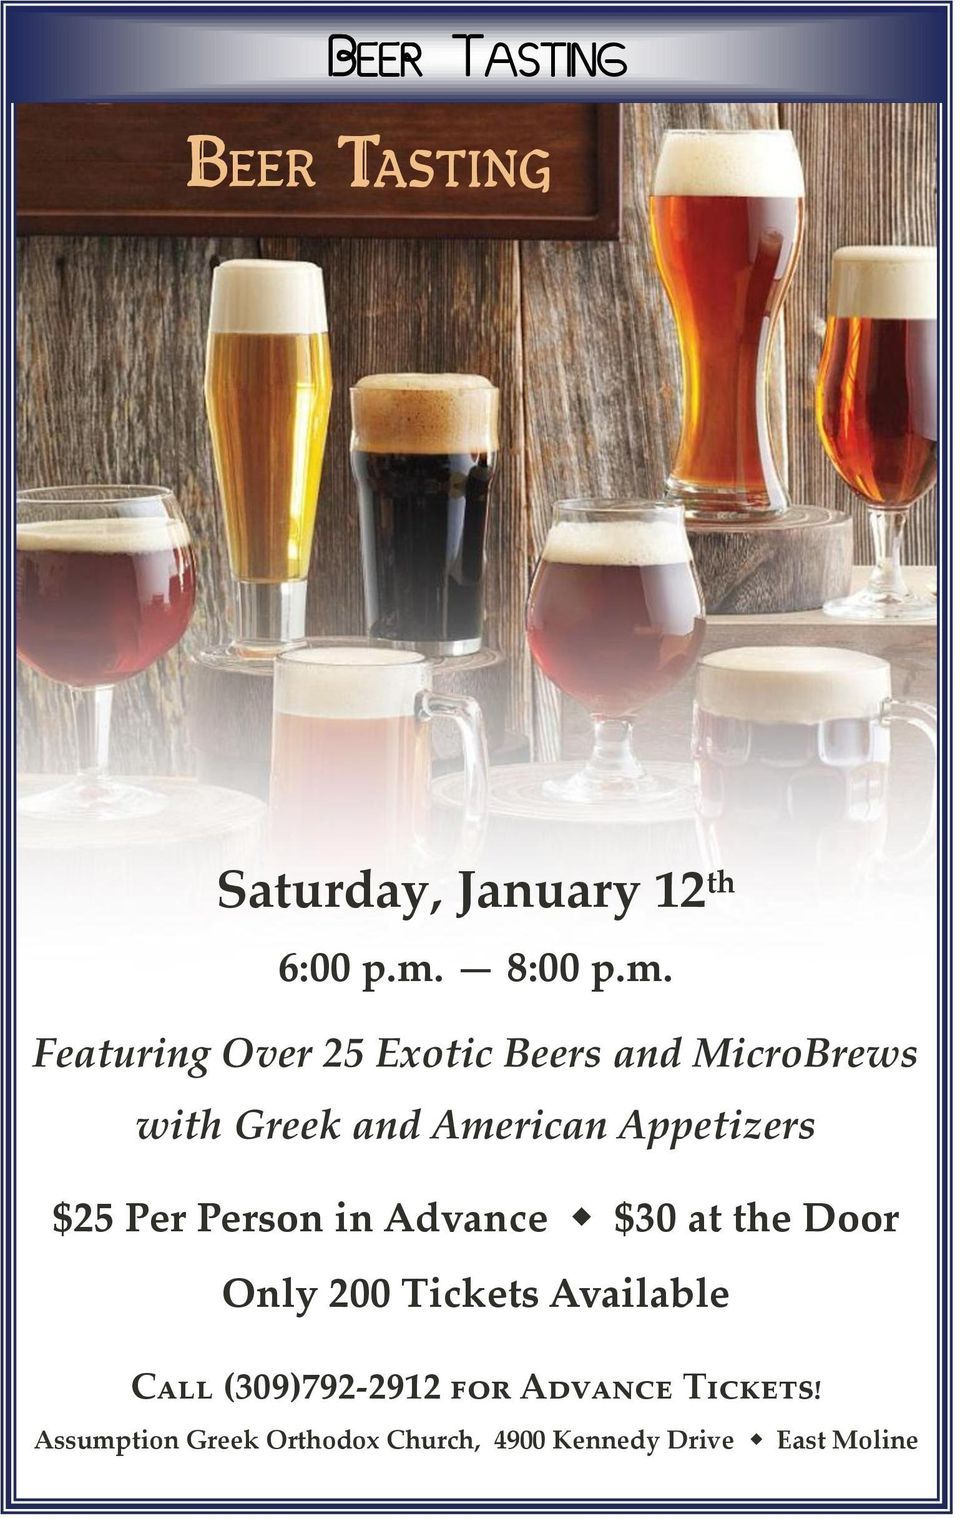 Featuring Over 25 Exotic Beers and MicroBrews with Greek and American Appetizers